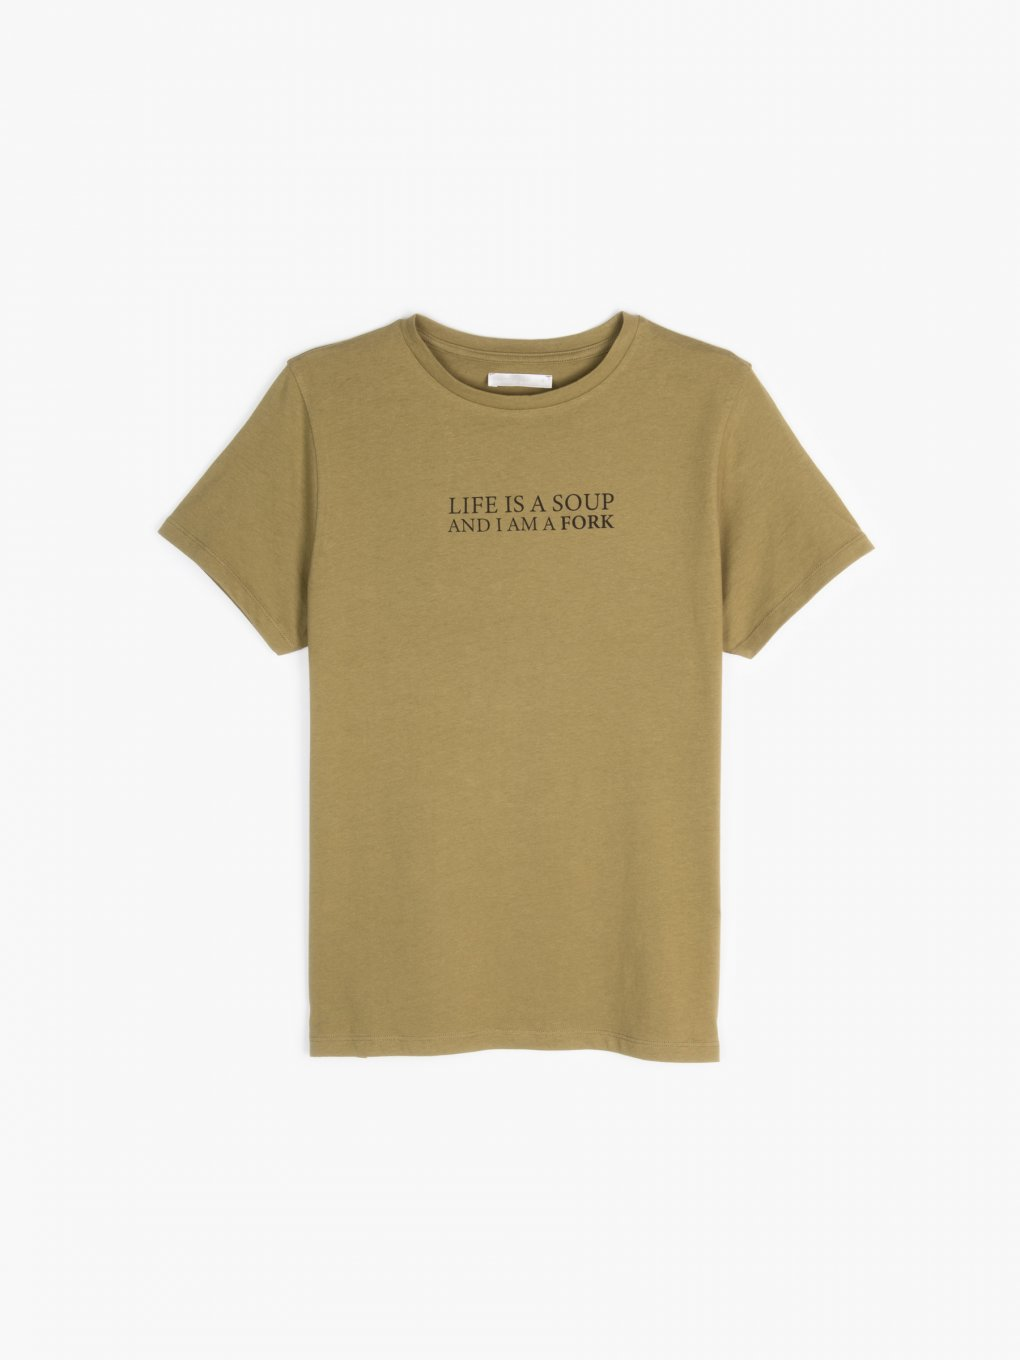 Cotton slogan print t-shirt